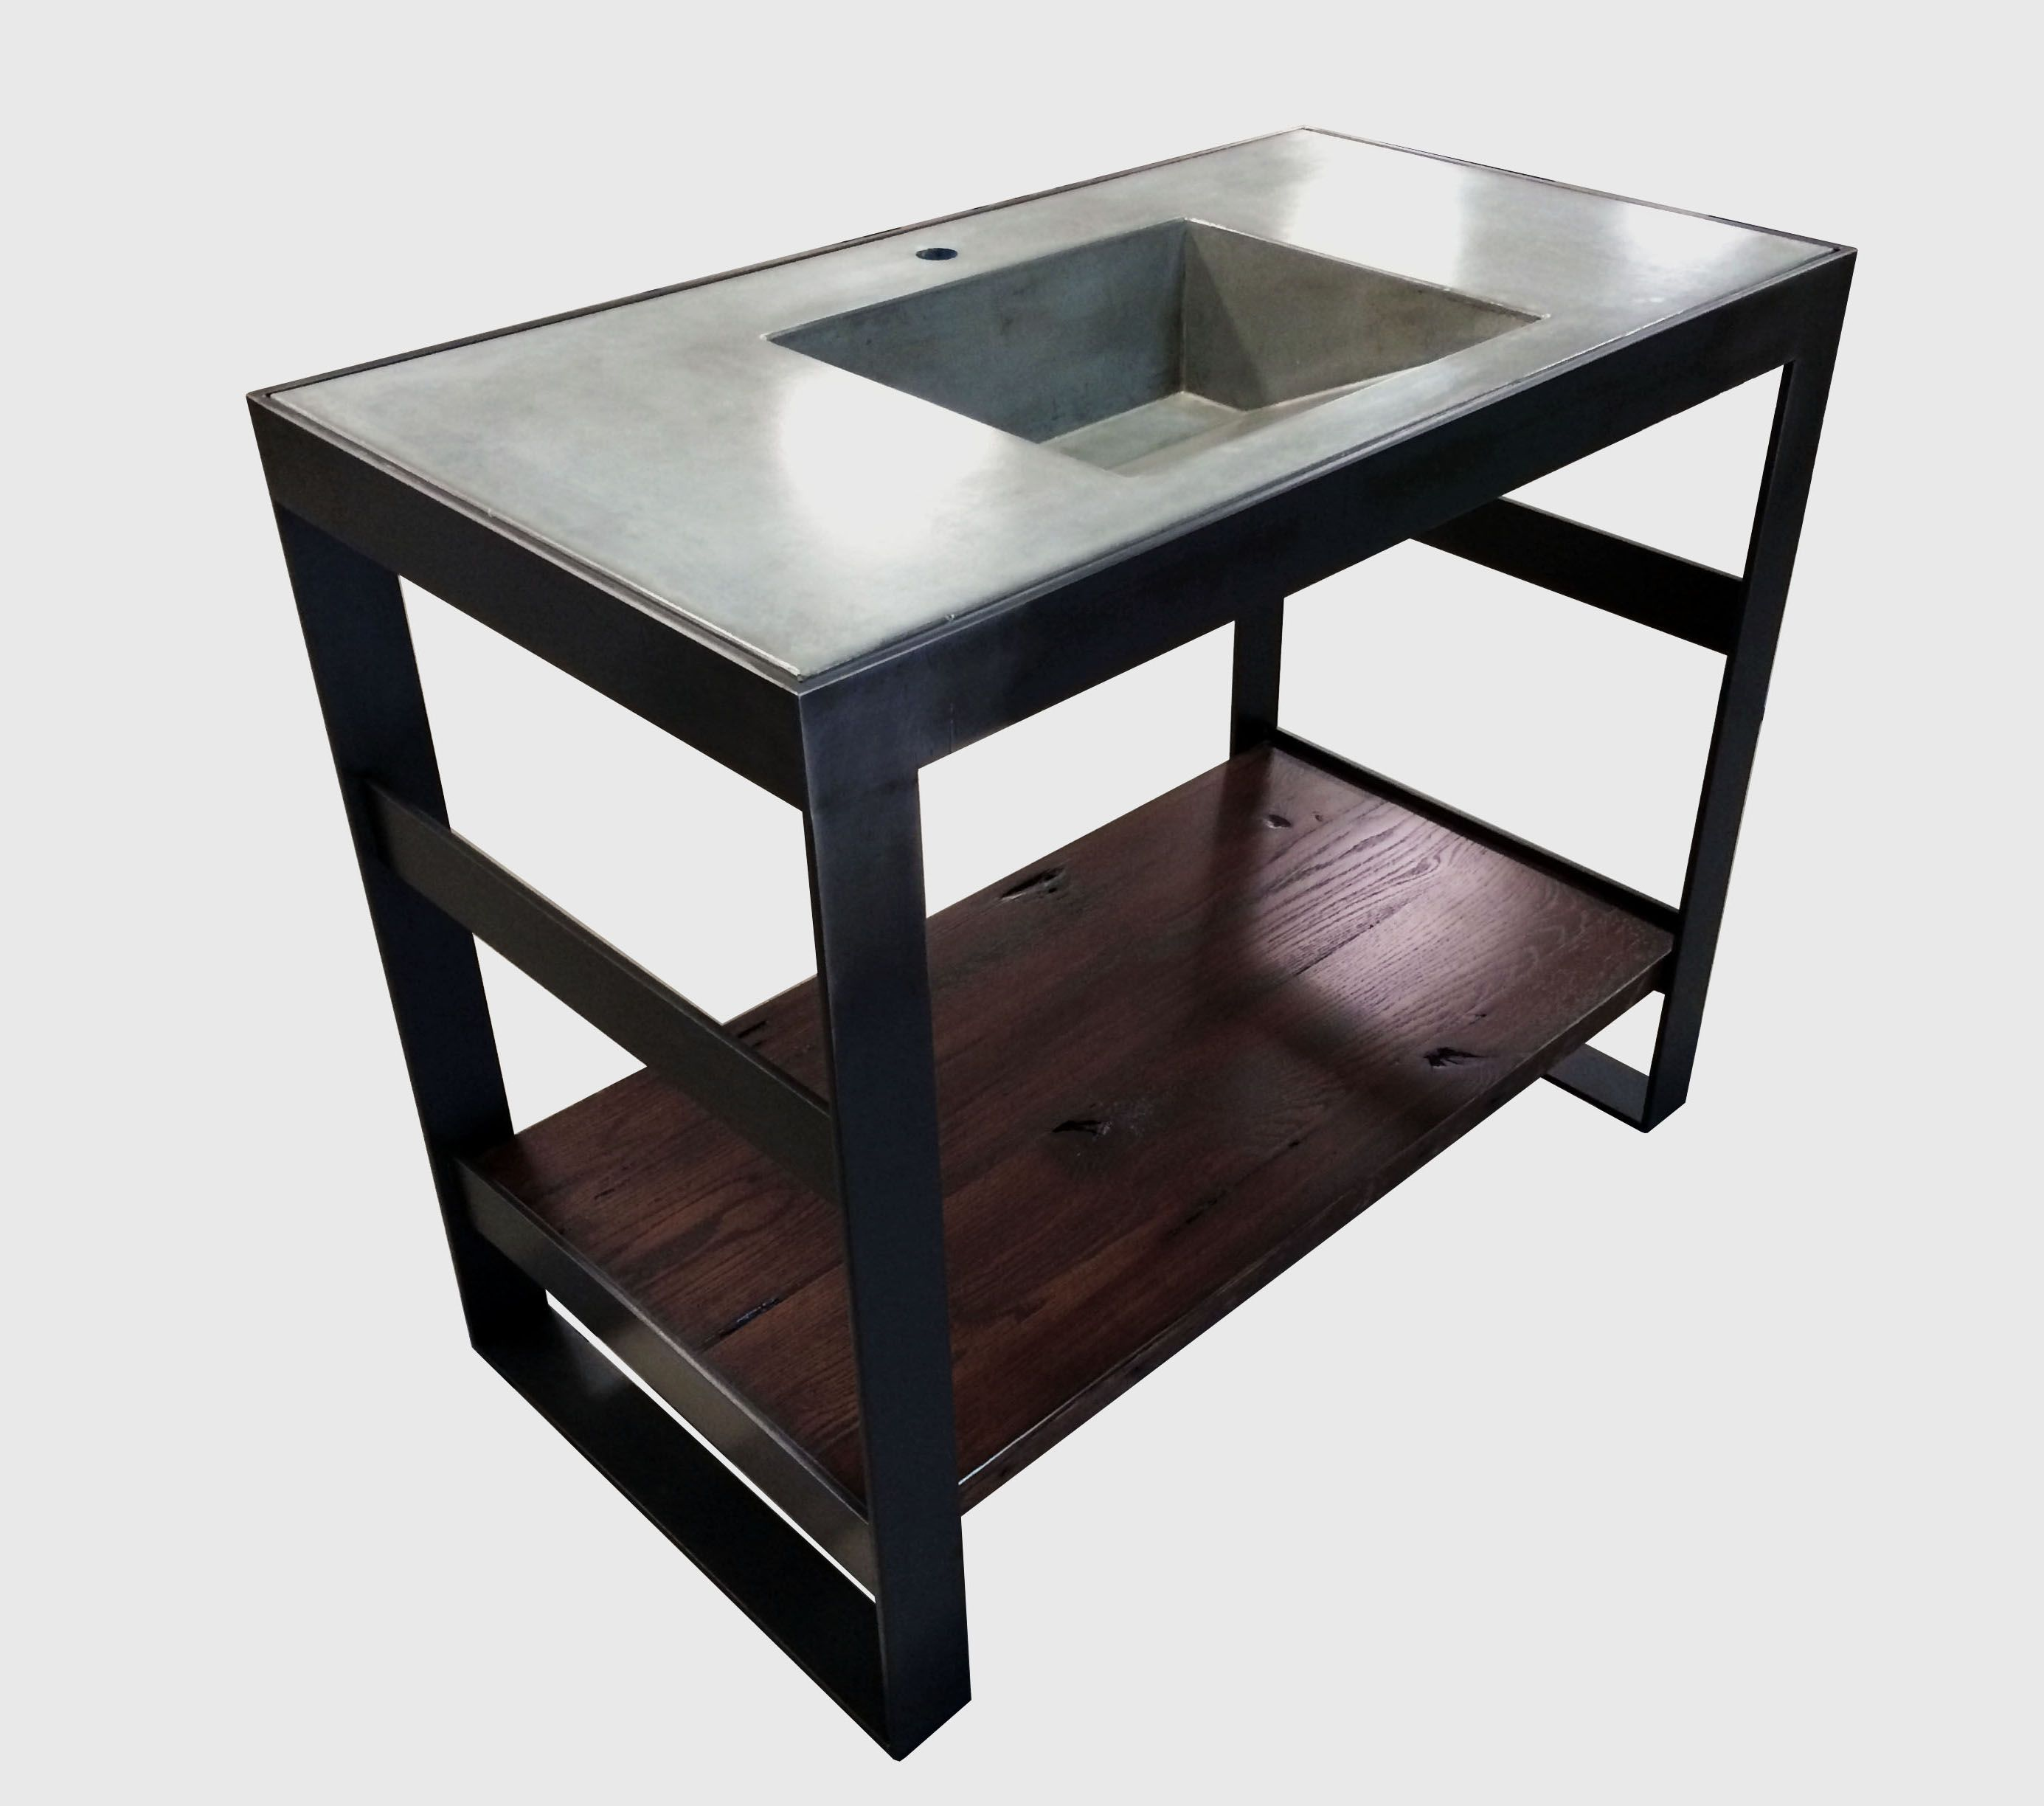 Bathroom Vanity Under $500 buy a hand crafted open frame steel and reclaimed oak bath vanity